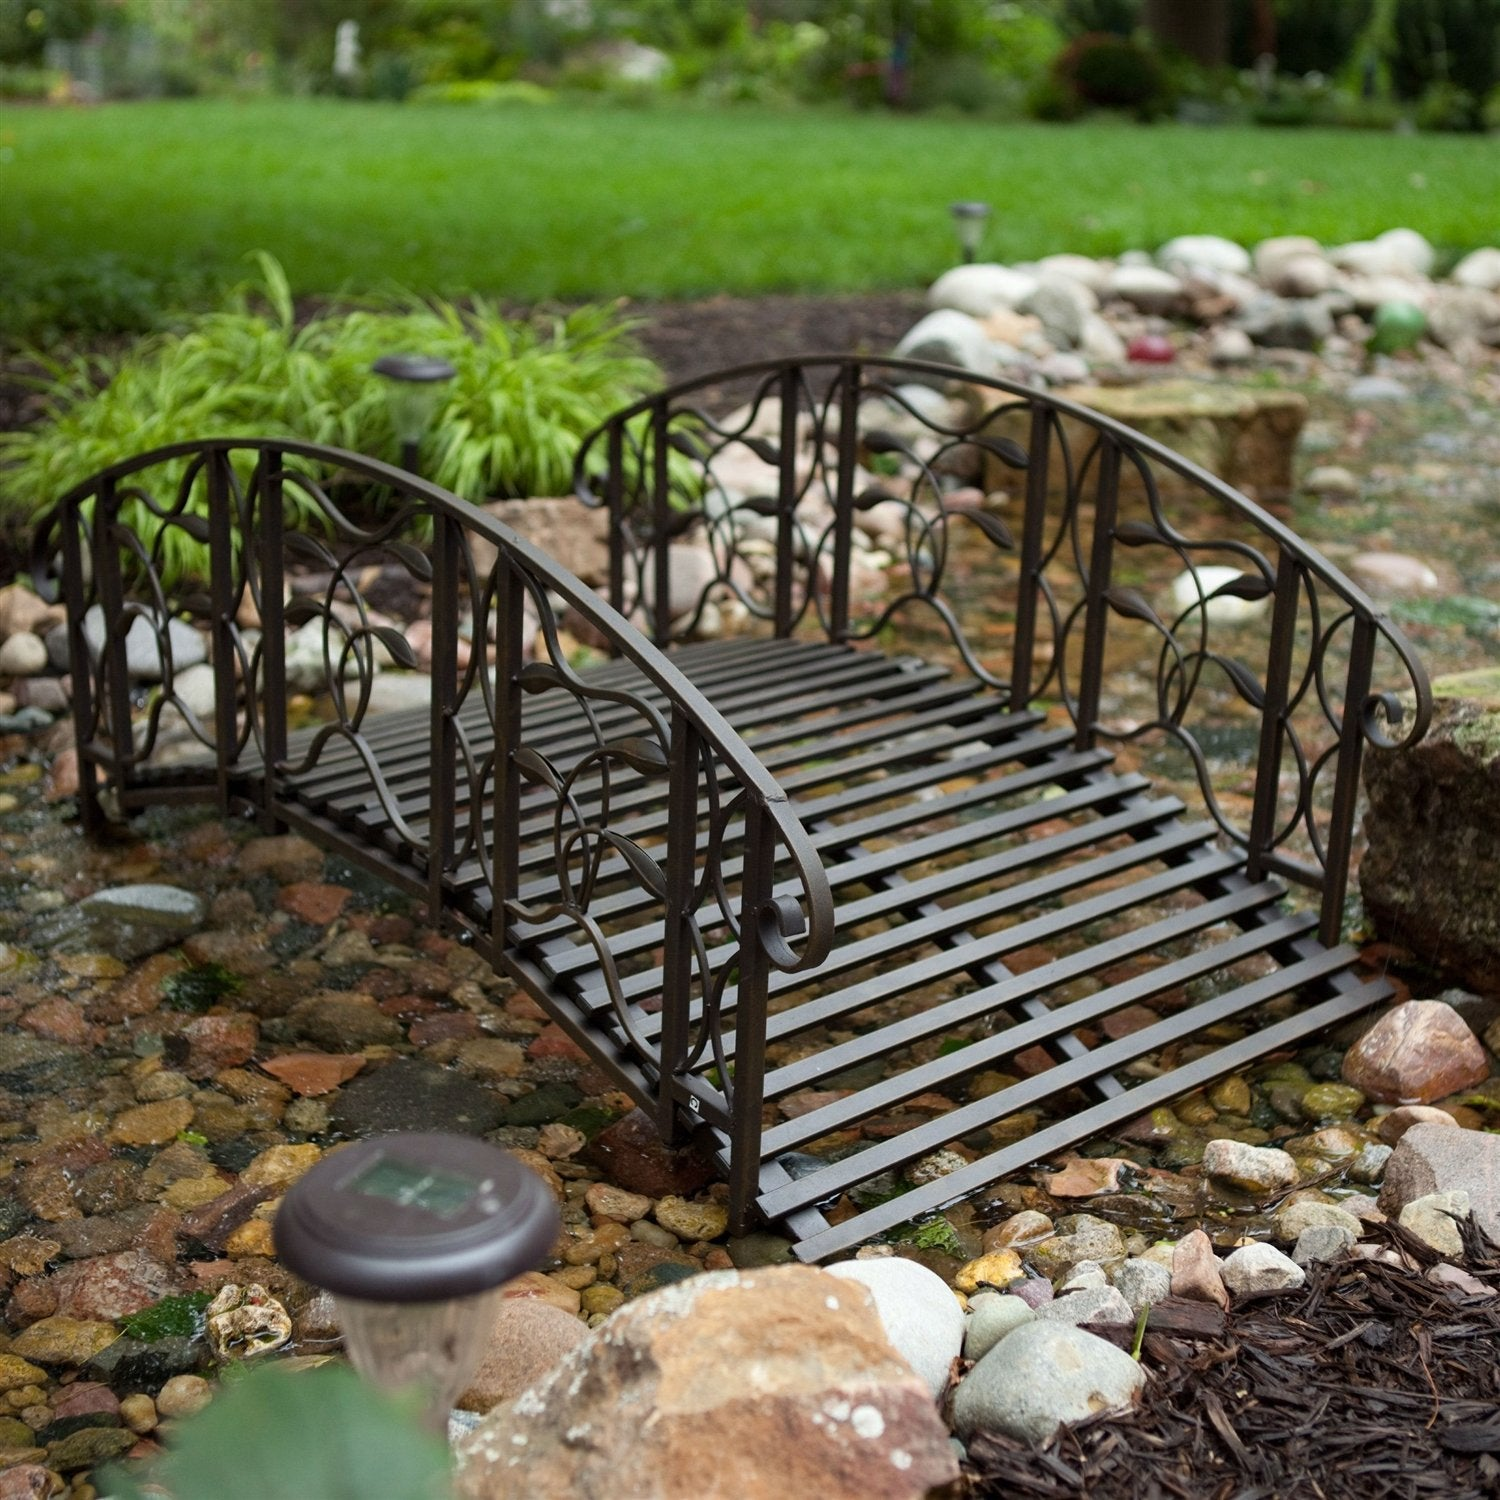 4-Foot Steel Frame Metal Garden Bridge in Rustic Weathered Black Finish